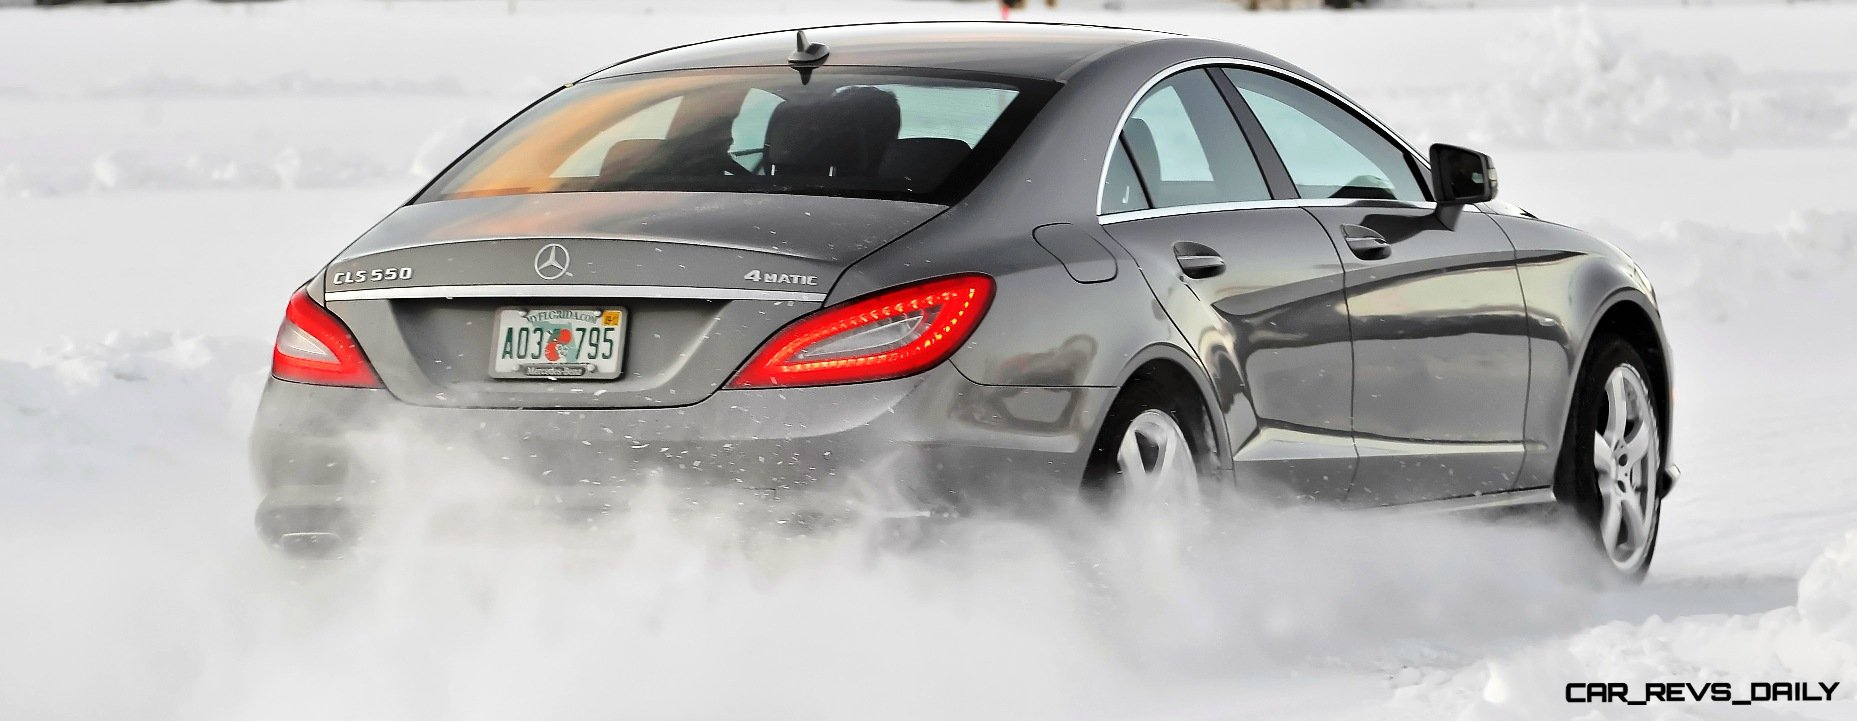 East Coast West Coast Benz Battle: CLS550 4Matic versus CLS550 » Car